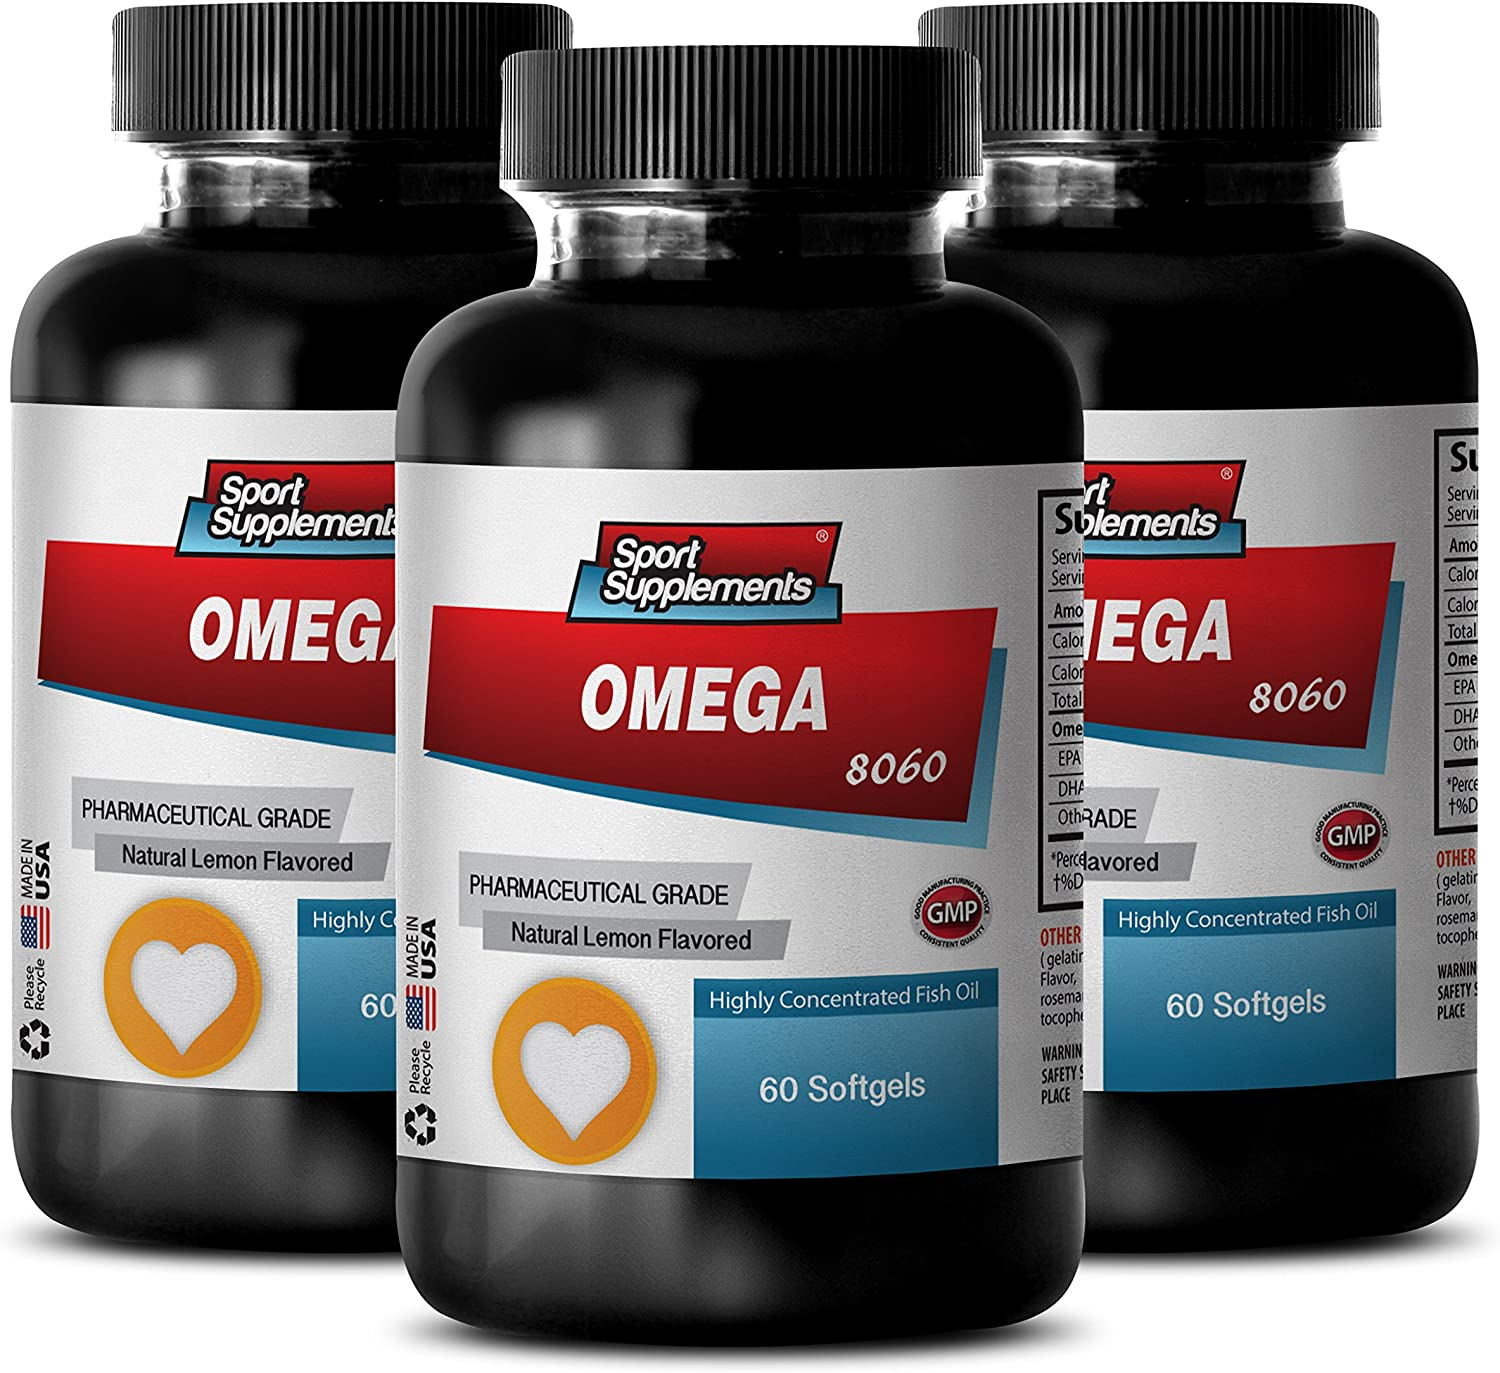 Omega 6 Fatty Acid Max 41% OFF - 8060 Heart and Brain Special Campaign Boosts Joint